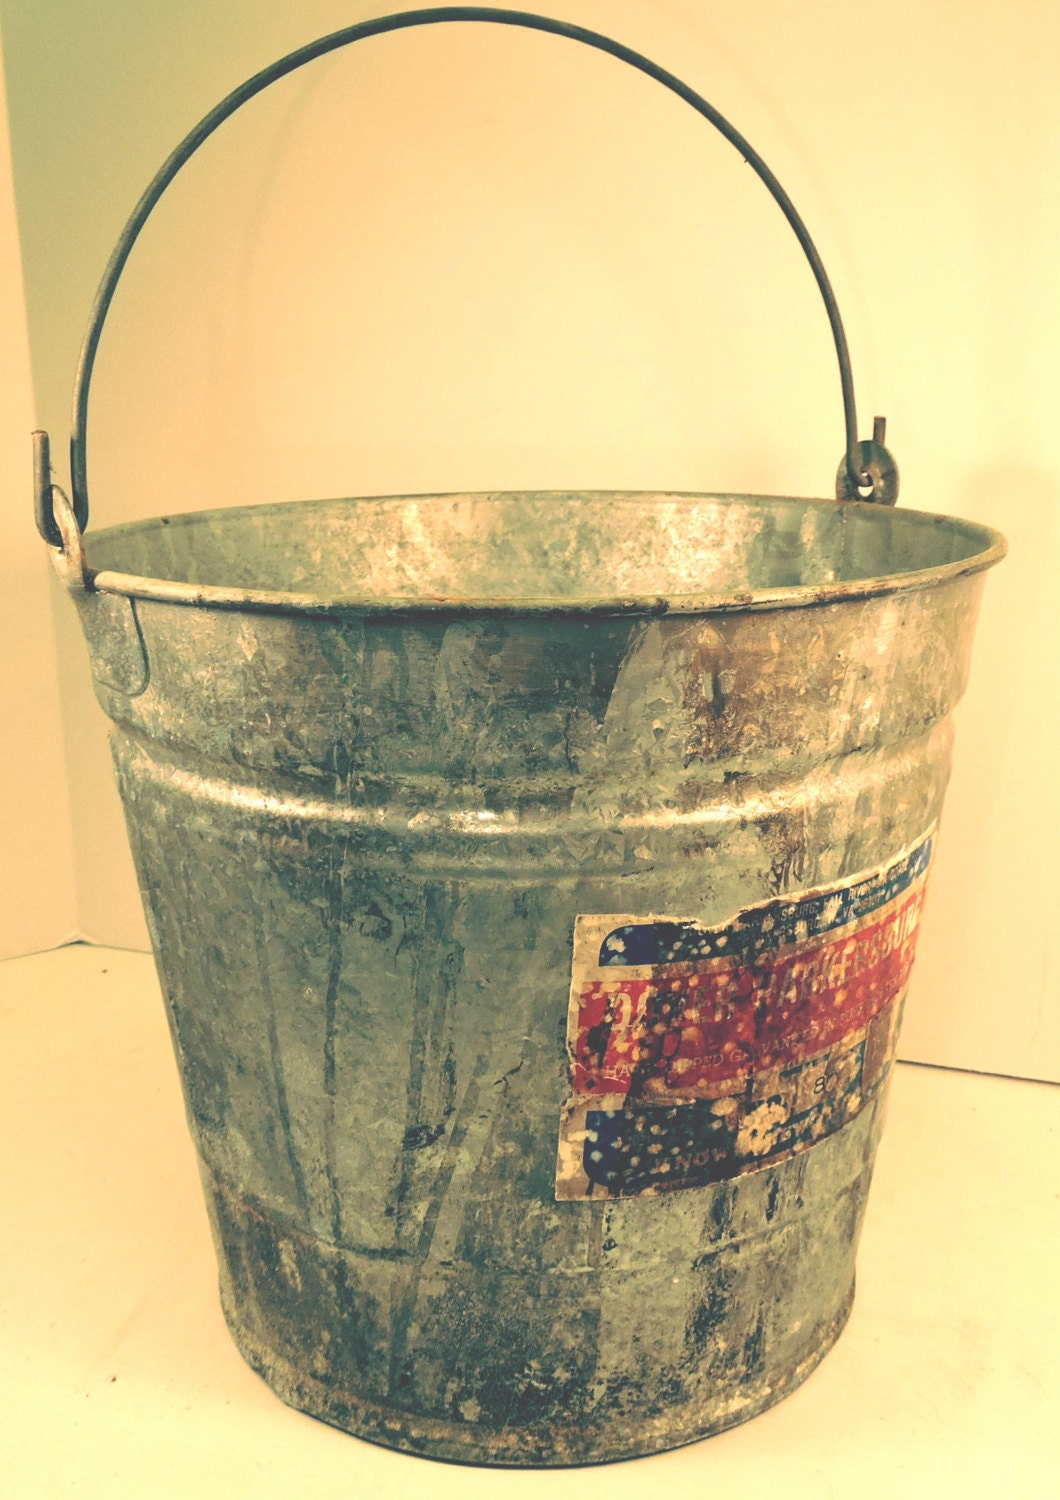 Galvanized pail bucket vintage rustic farmhouse garden for Rustic galvanized buckets